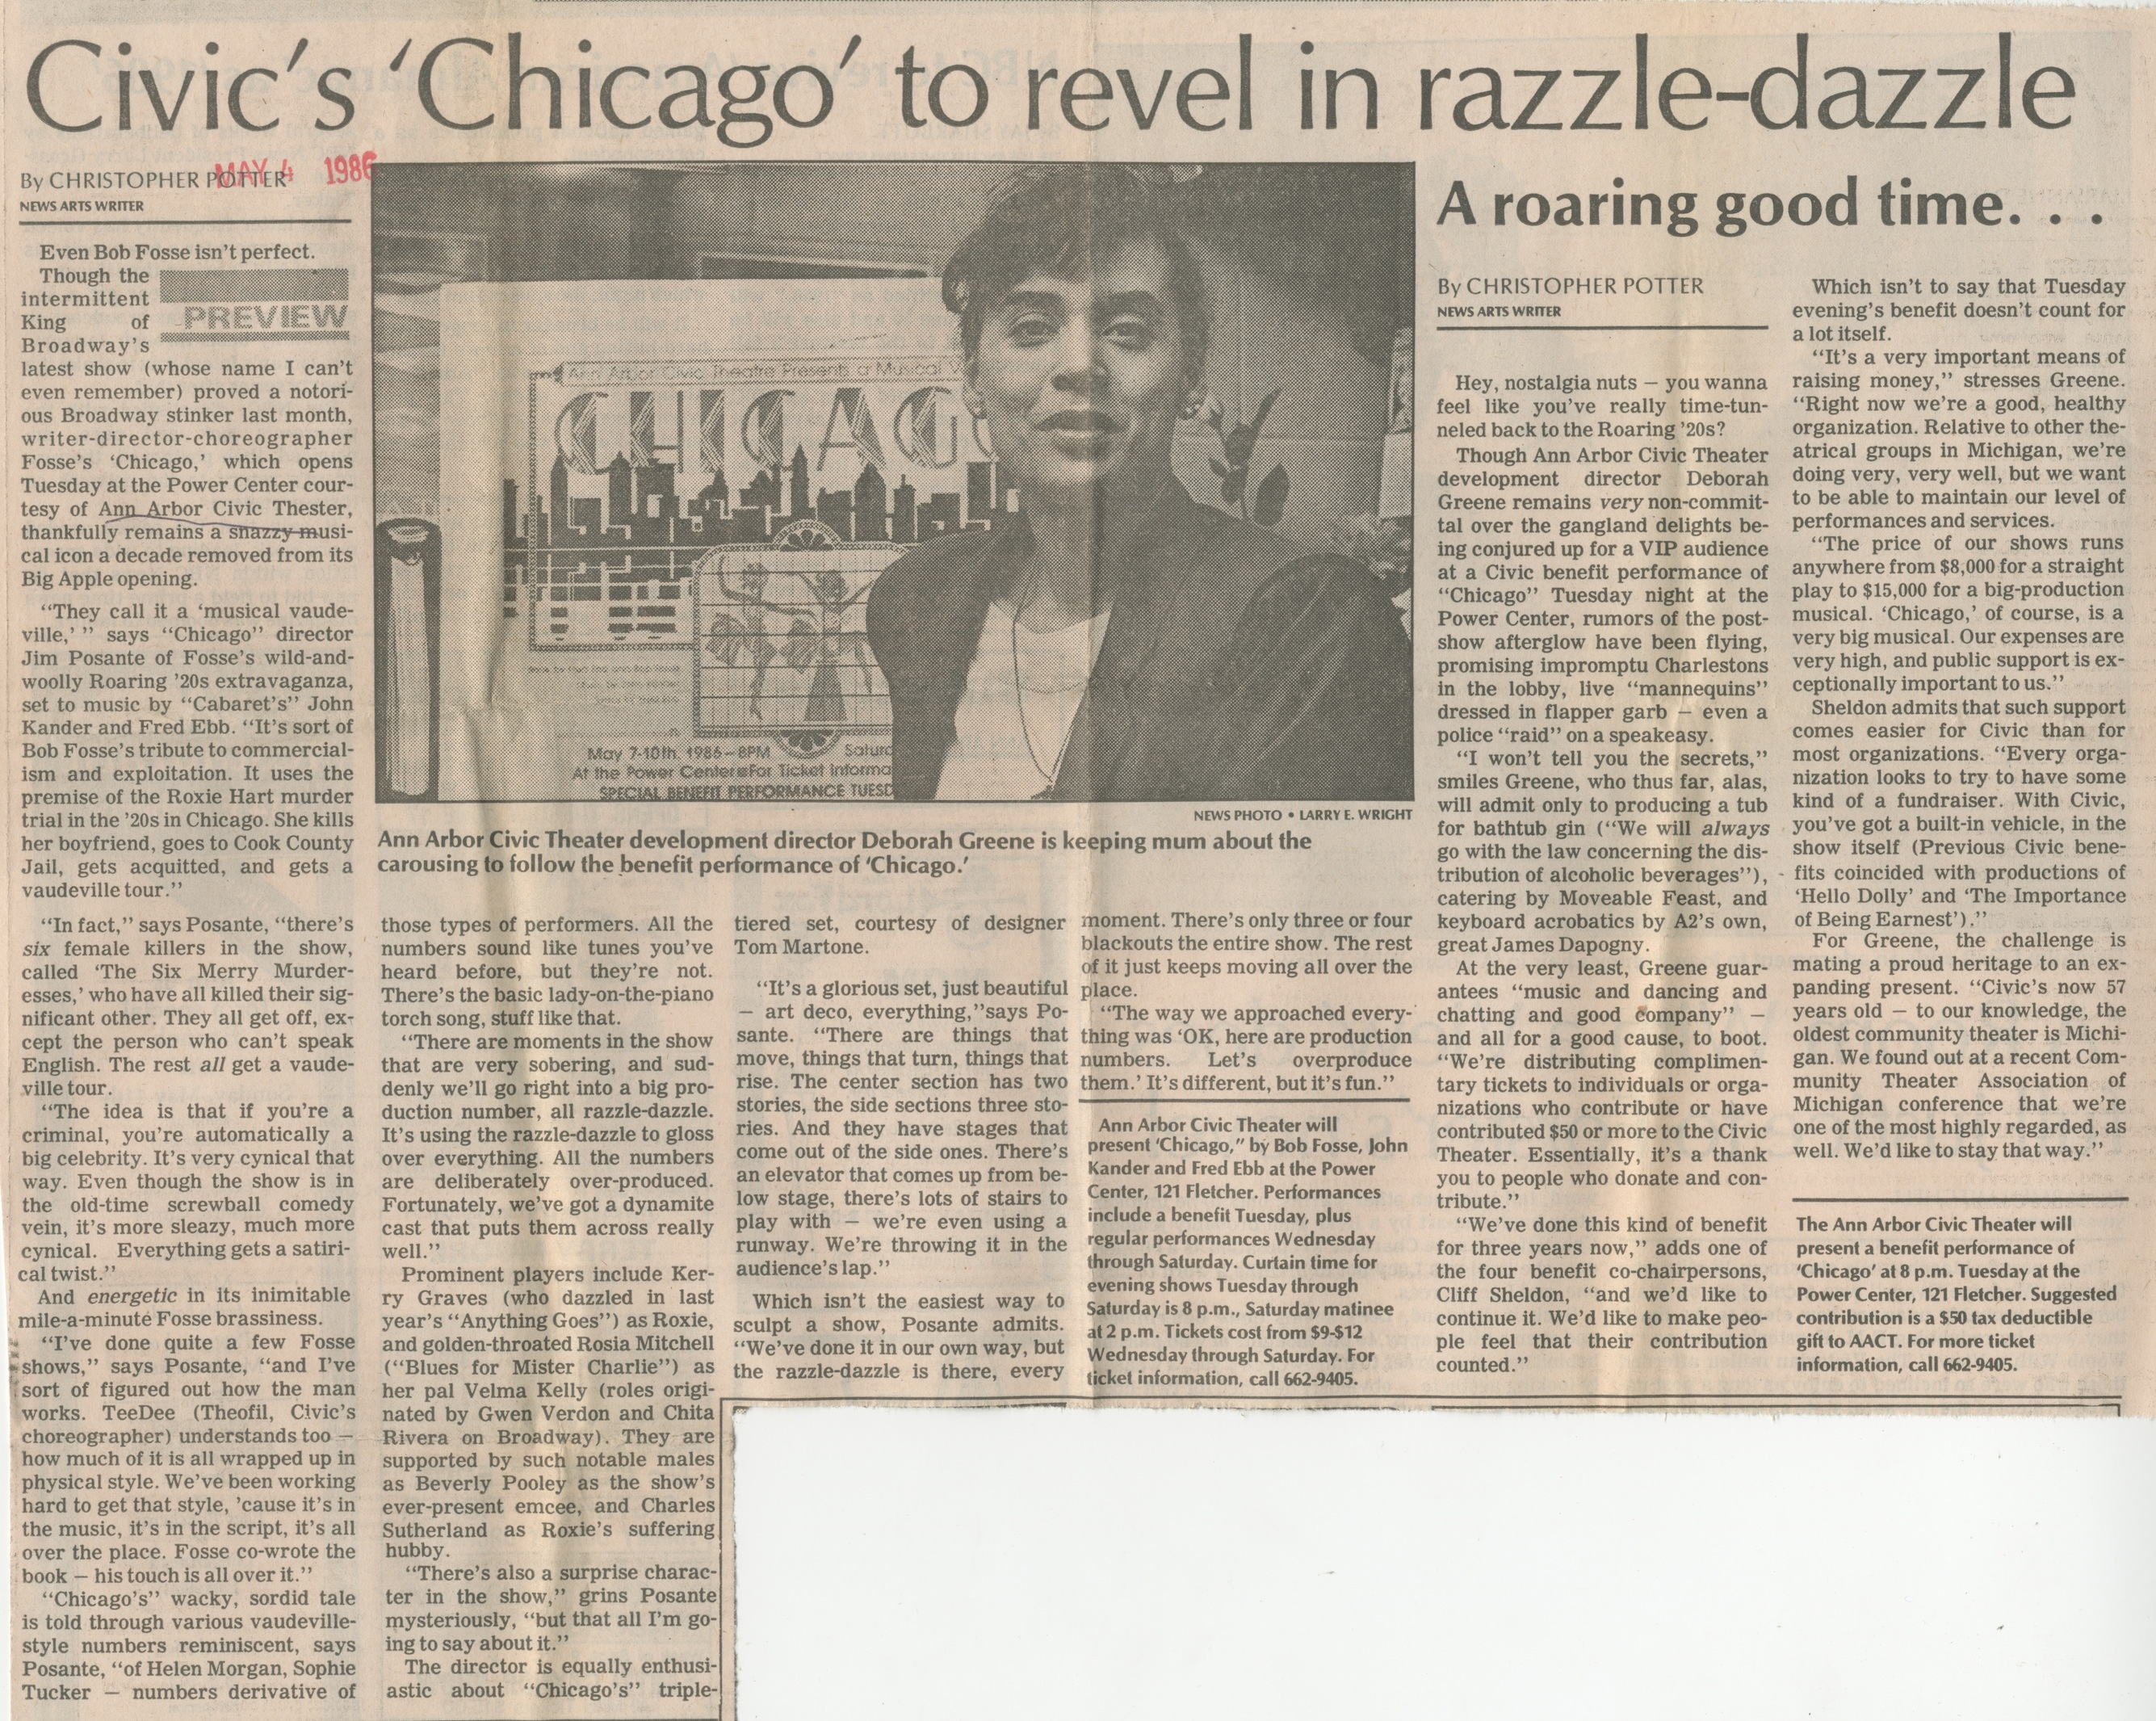 Civic's 'Chicago' To Revel In Razzle-Dazzle - A Roaring Good Time . . . image